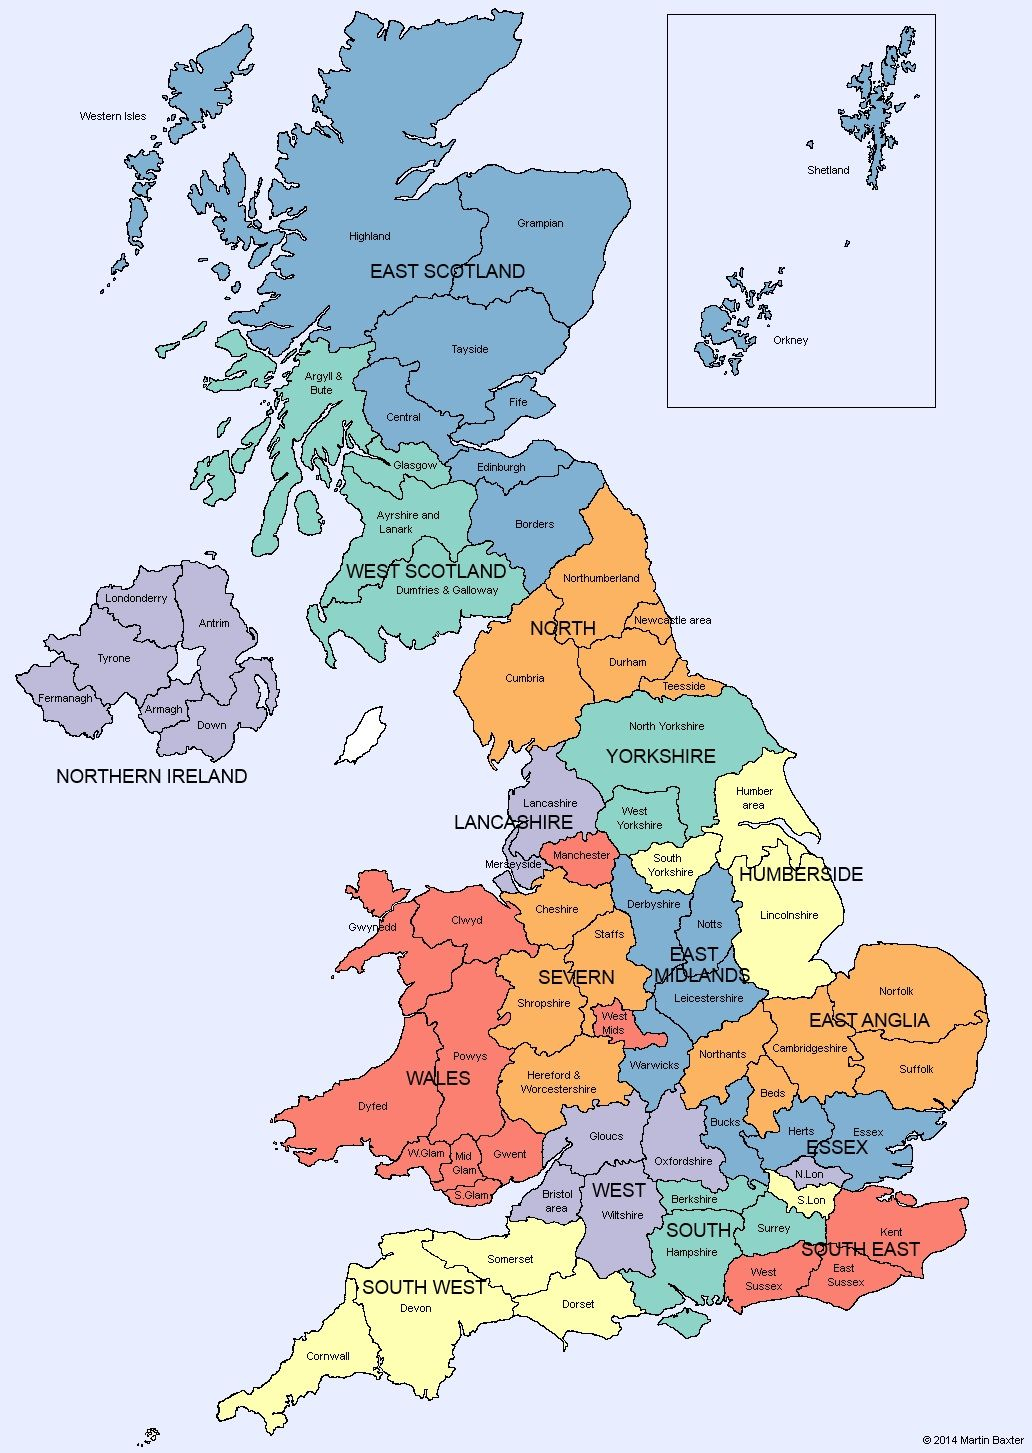 Map Of Northern Ireland Counties.U K Map Of Regions And Counties Of England Scotland Wales And